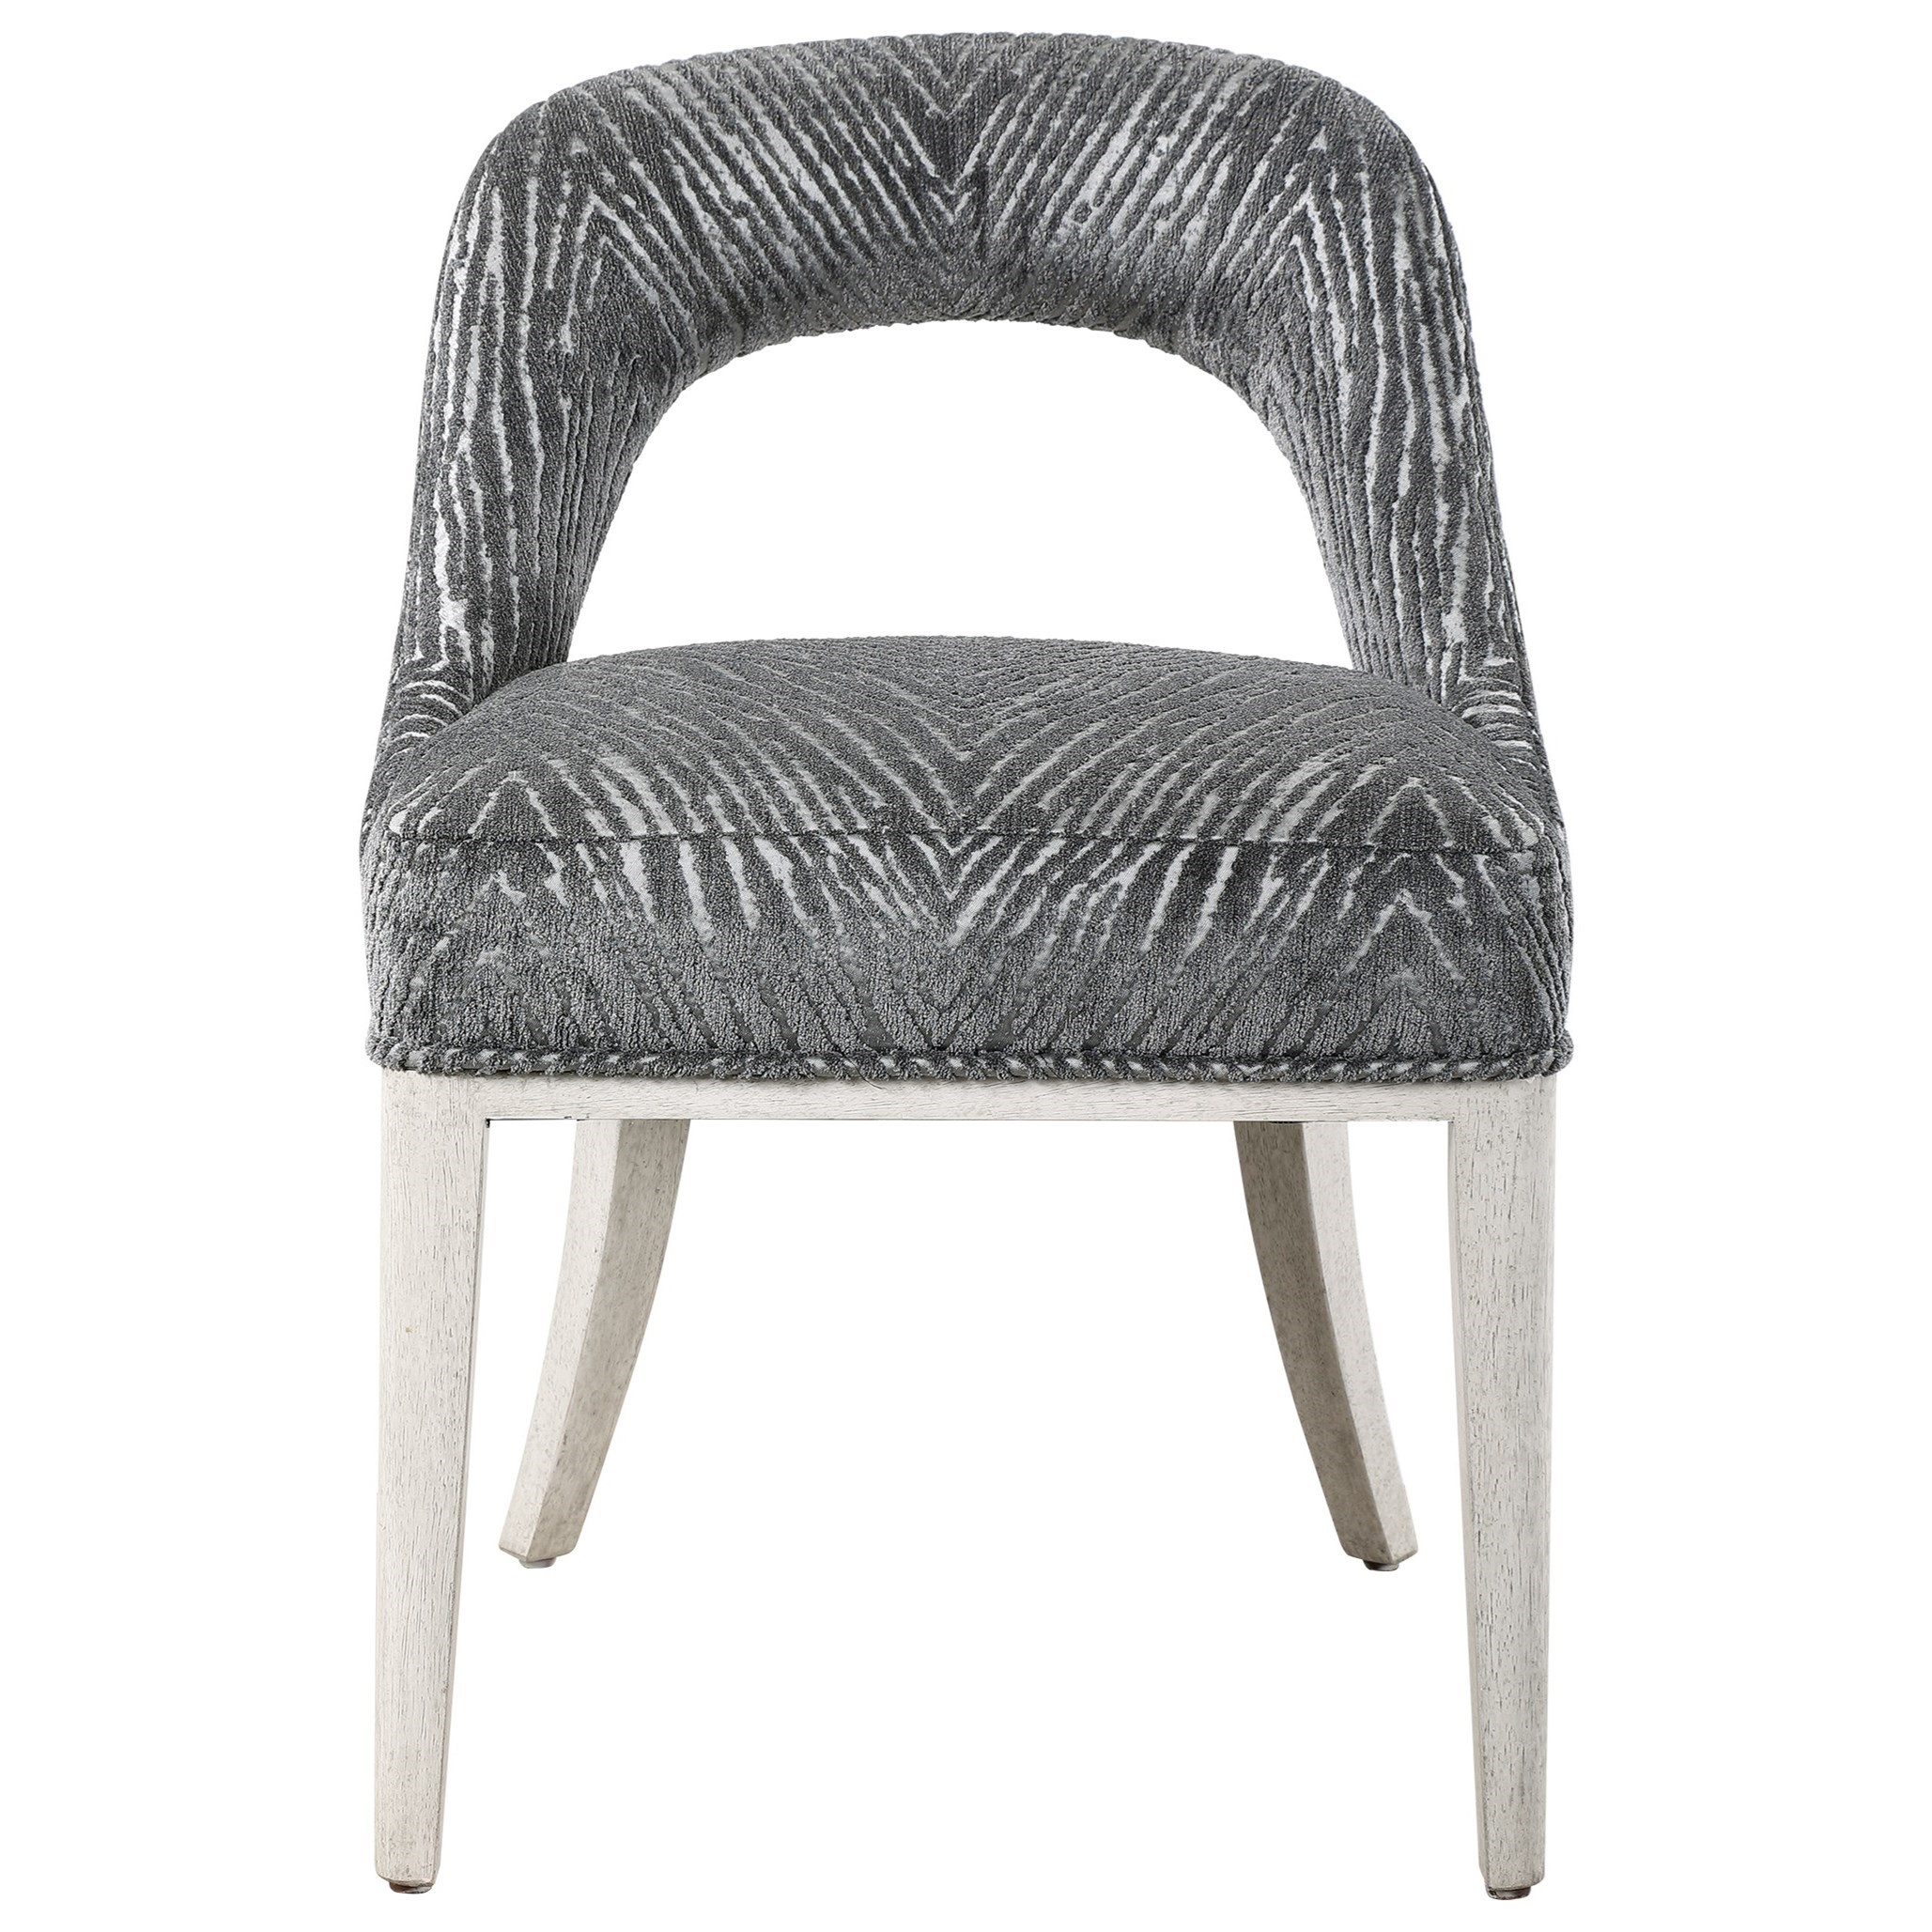 Accent Furniture - Accent Chairs Amalia Accent Chair, S/2 by Uttermost at Mueller Furniture